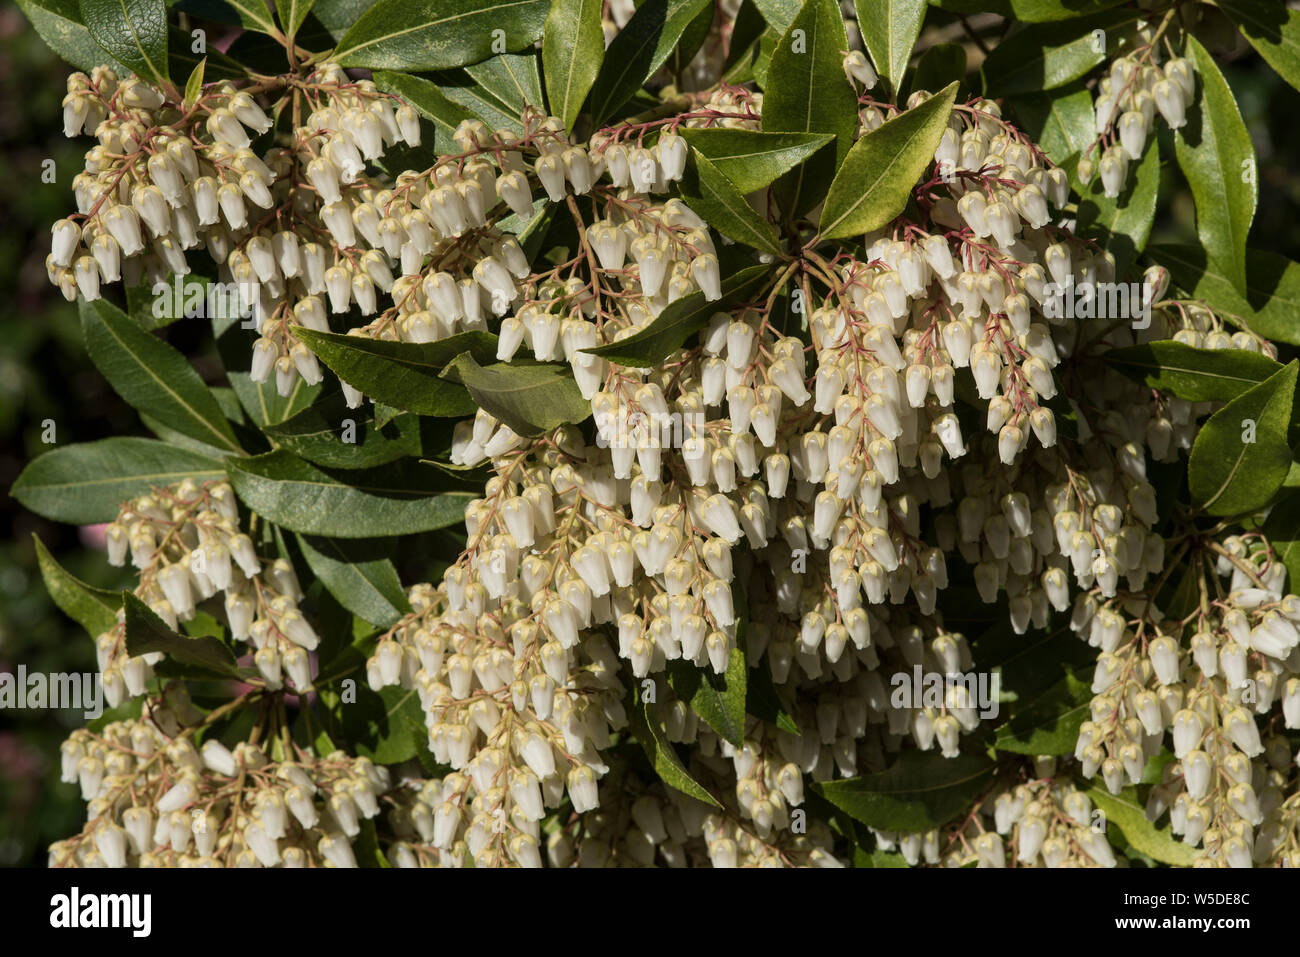 Lily Of The Valley Shrub Stock Photos Lily Of The Valley Shrub